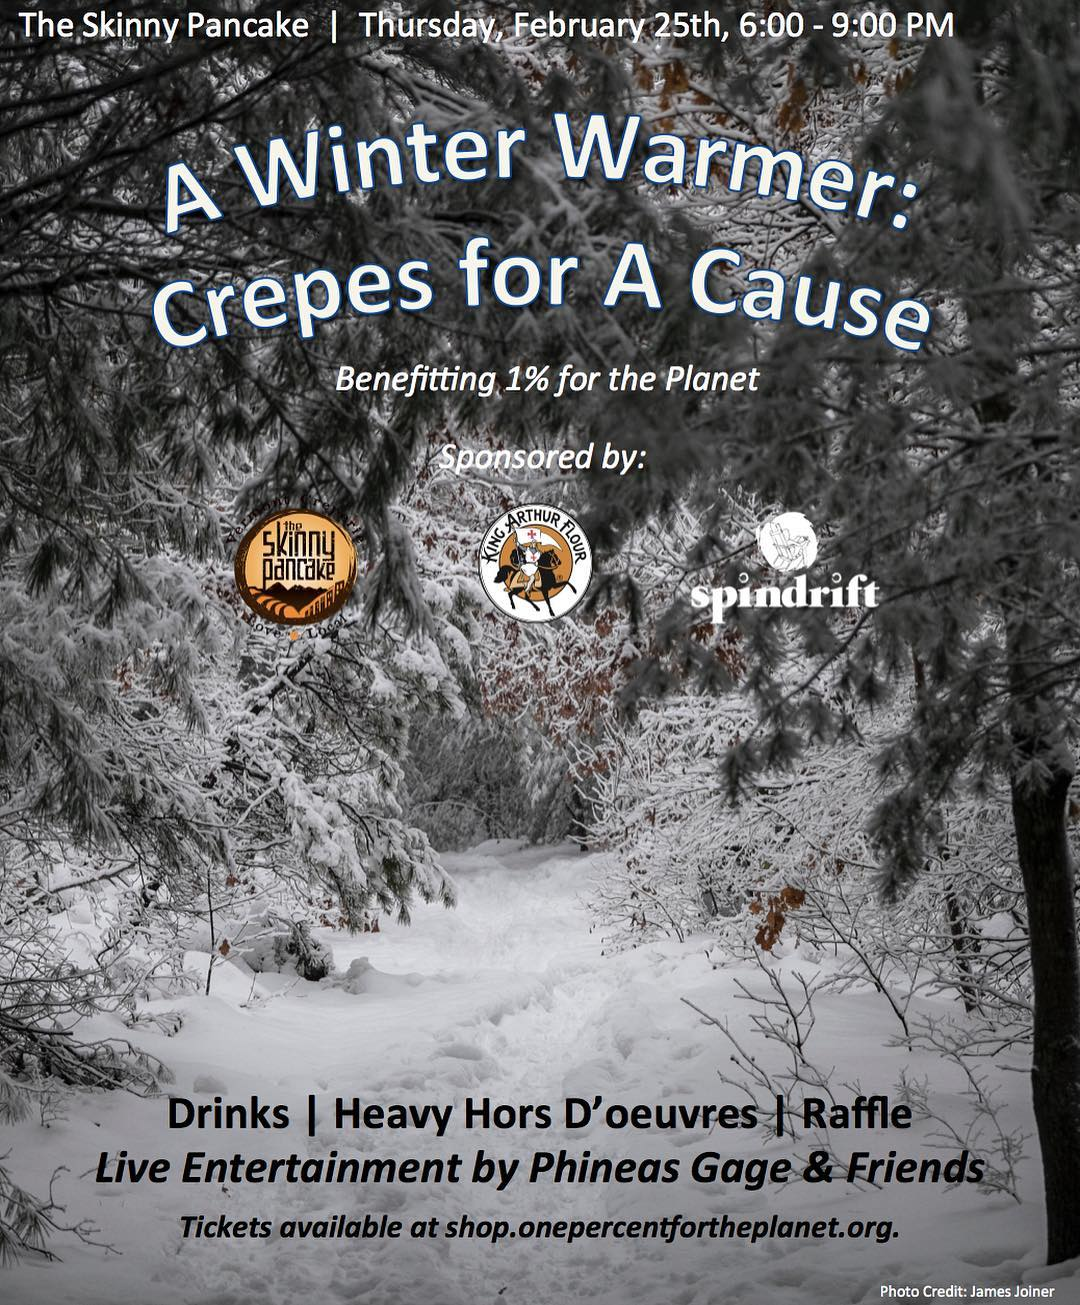 It's a Winter Warmer! Join @1percentftp on February 25th from 6-9 PM for a special evening of fun and entertainment at the @skinnypancake. The night will feature heavy hors d'oeuvres, a raffle, and live entertainment by Phineas Gage & Friends!  To...